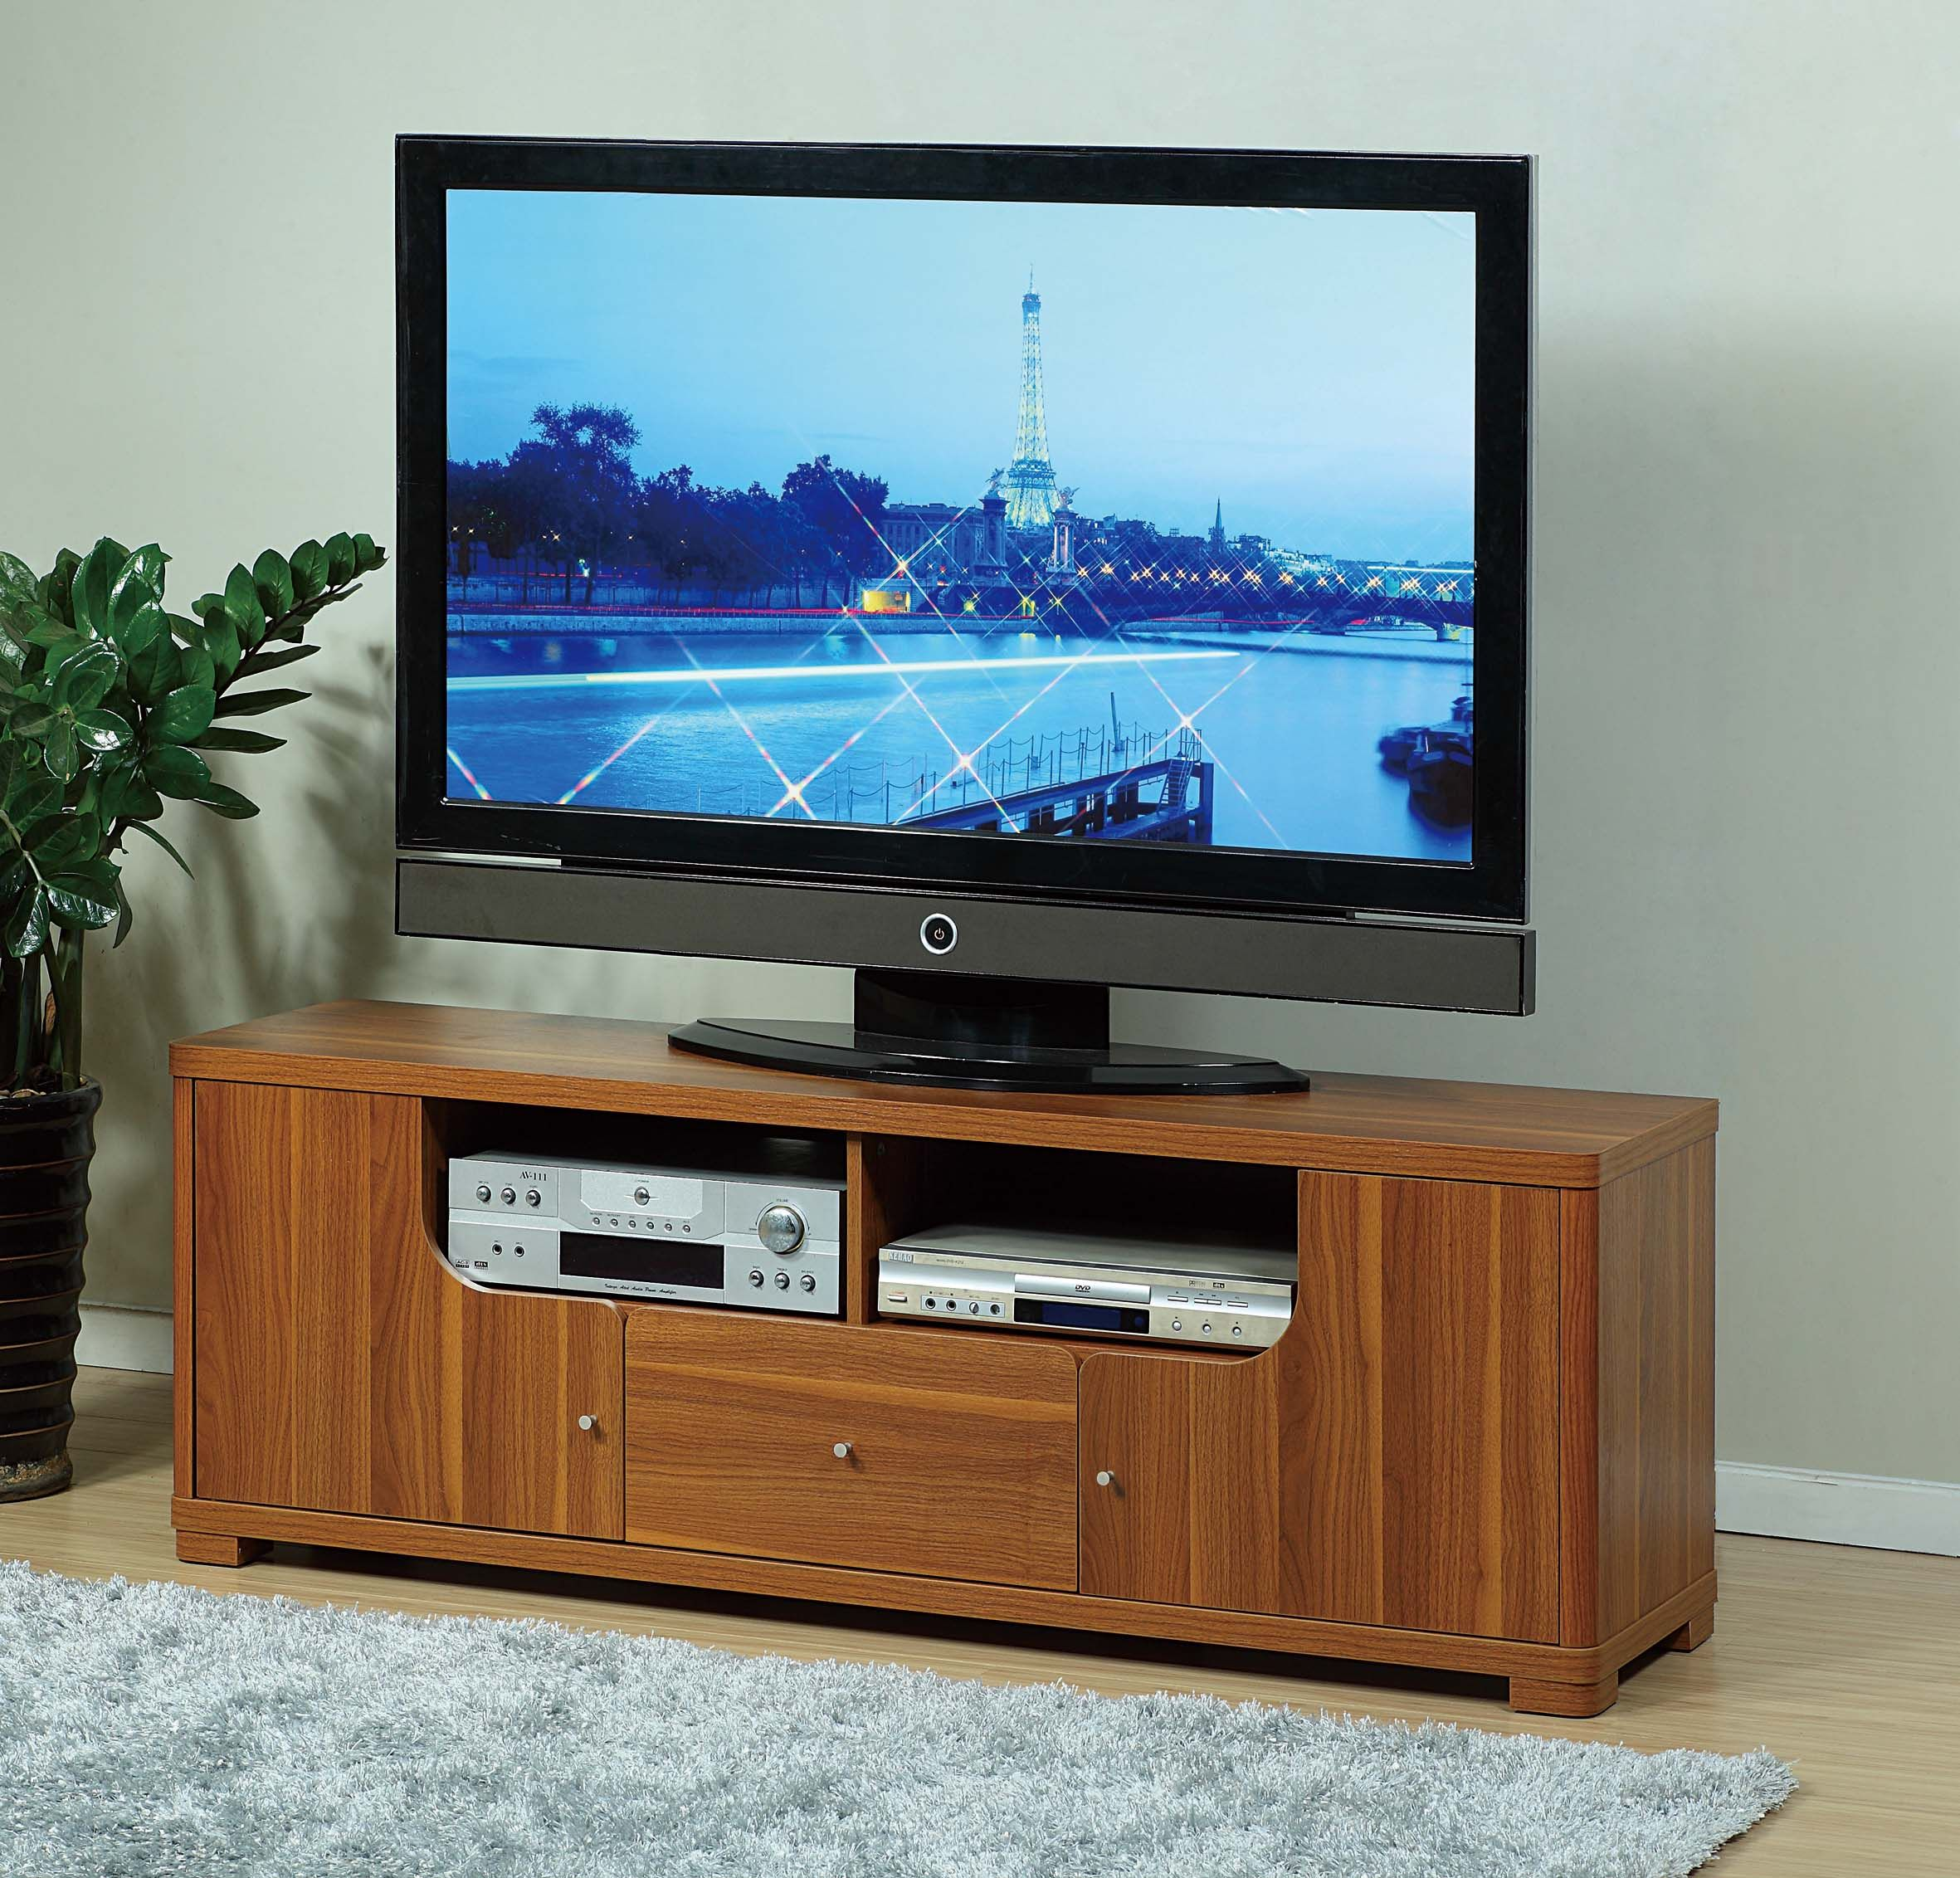 ID USA No. 13824 TV Stand is retro and modern too! This TV Stand